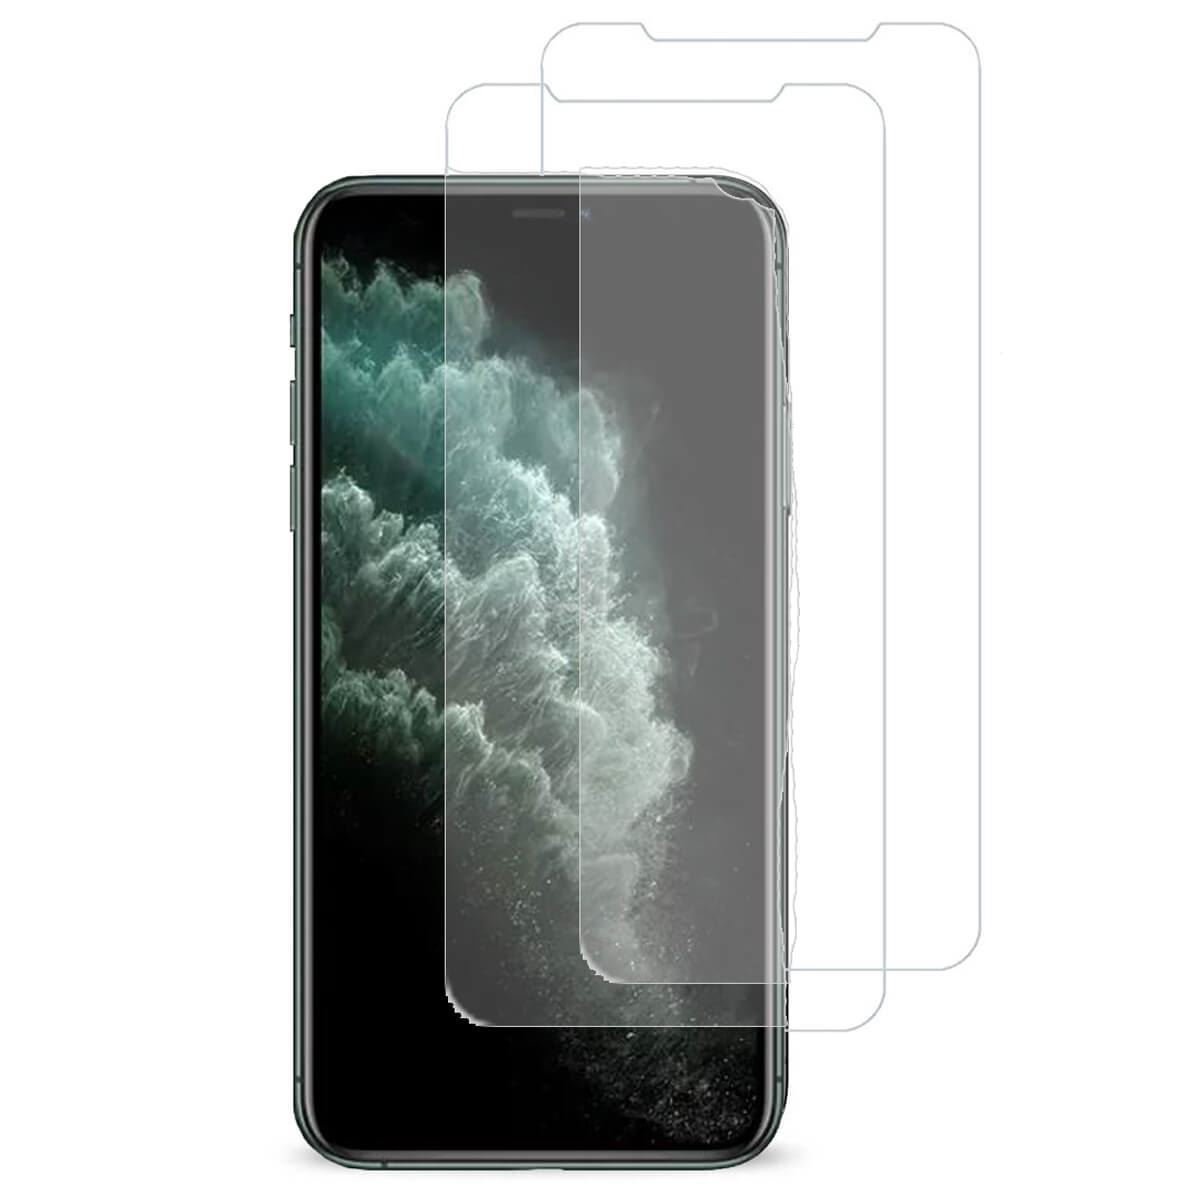 iPhone 11 Pro Max Tempered Glass Screen Protector 2 Pack